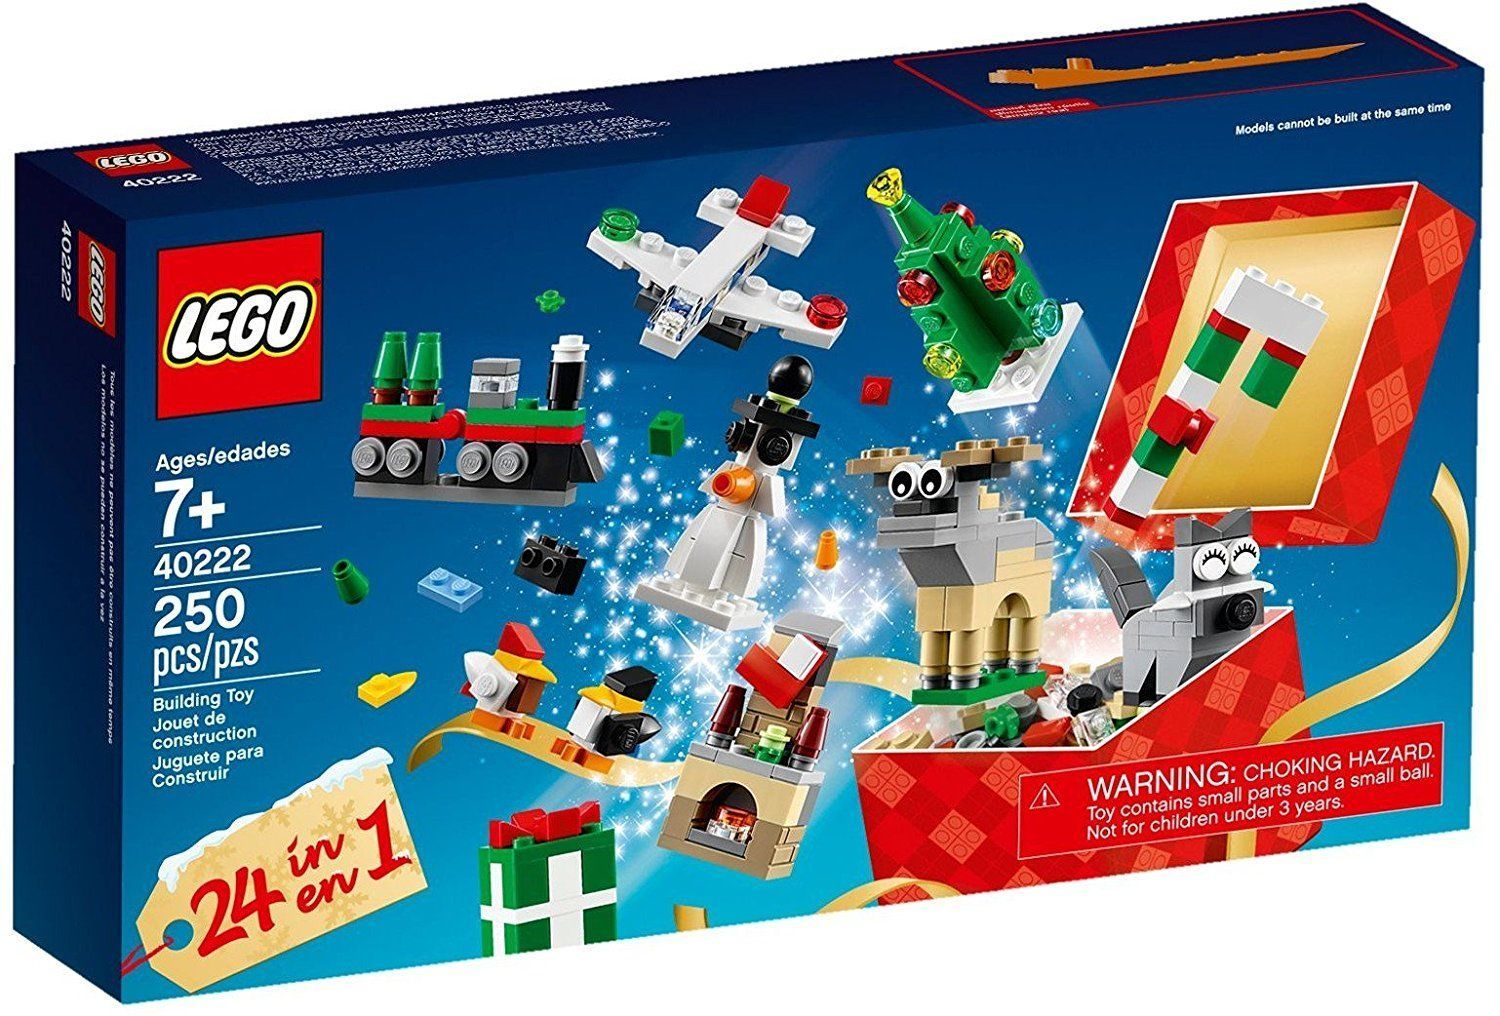 LEGO Christmas Building Set Countdown 24 in 1  40222, 250 pieces [New]